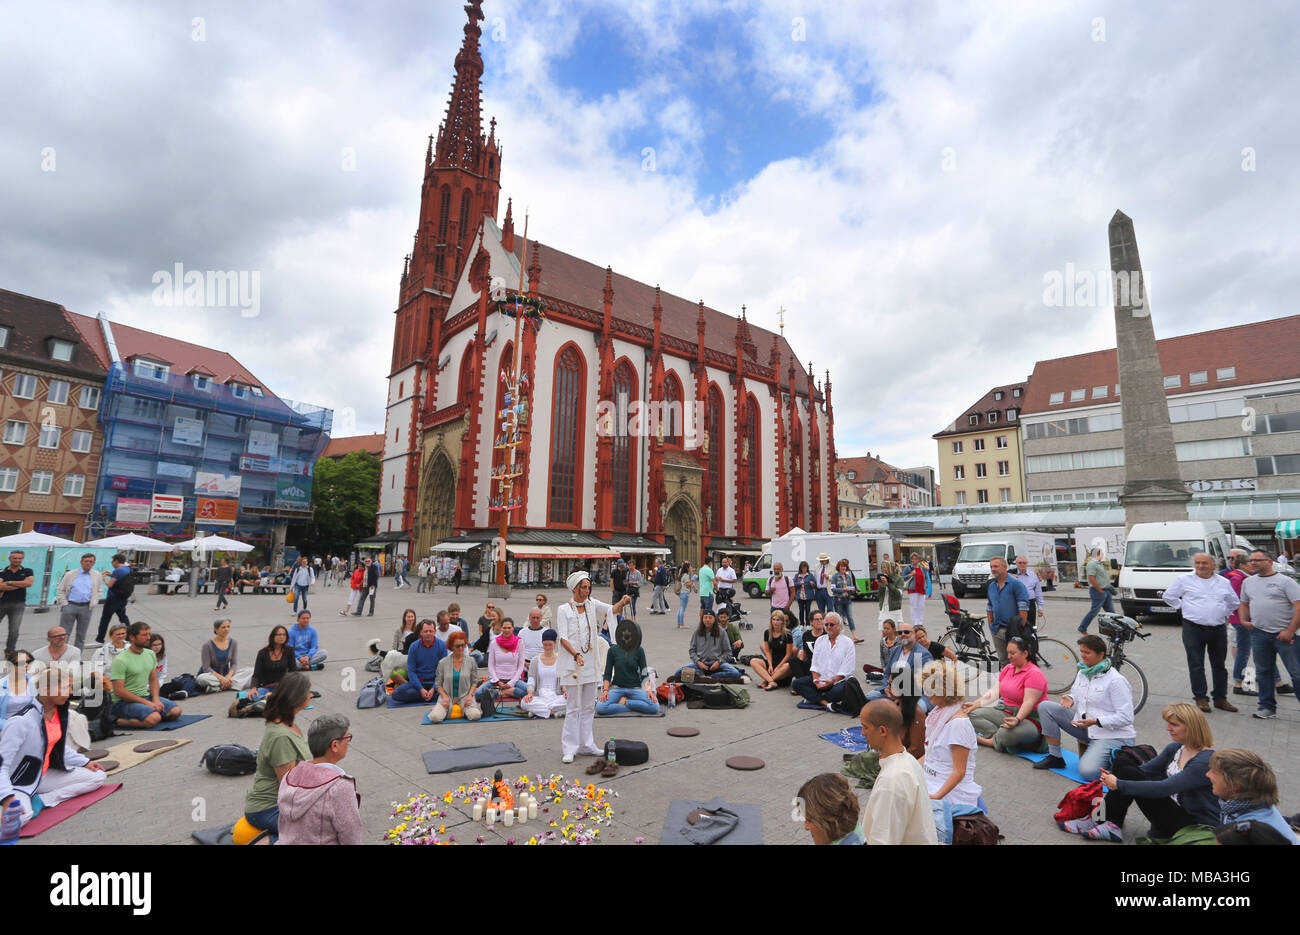 People beginning a meditation flashmob to the sound of a gong, at the Marktplatz in Würzburg, Germany, 17.06.2017. The event's motto was 'meditation for world peace' and its organizers say it is the second of its kind in Germany.   usage worldwide - Stock Image